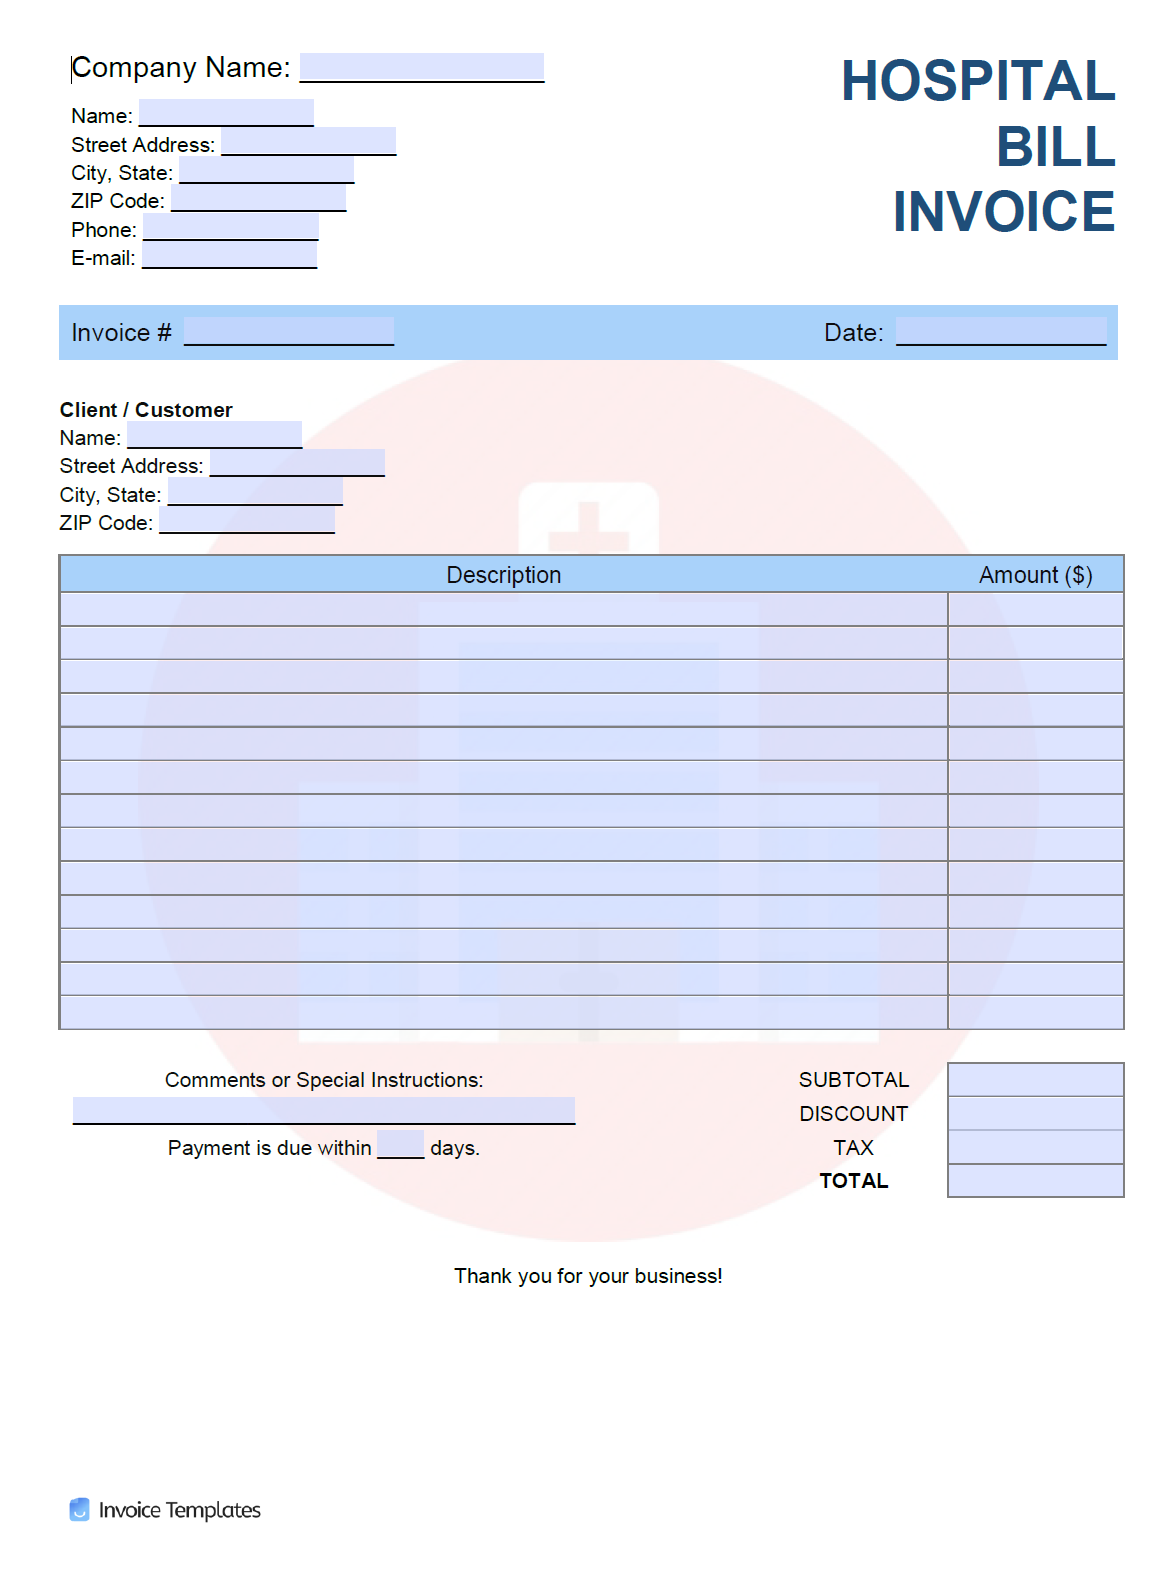 Free Hospital Bill Invoice Template   PDF   WORD   EXCEL